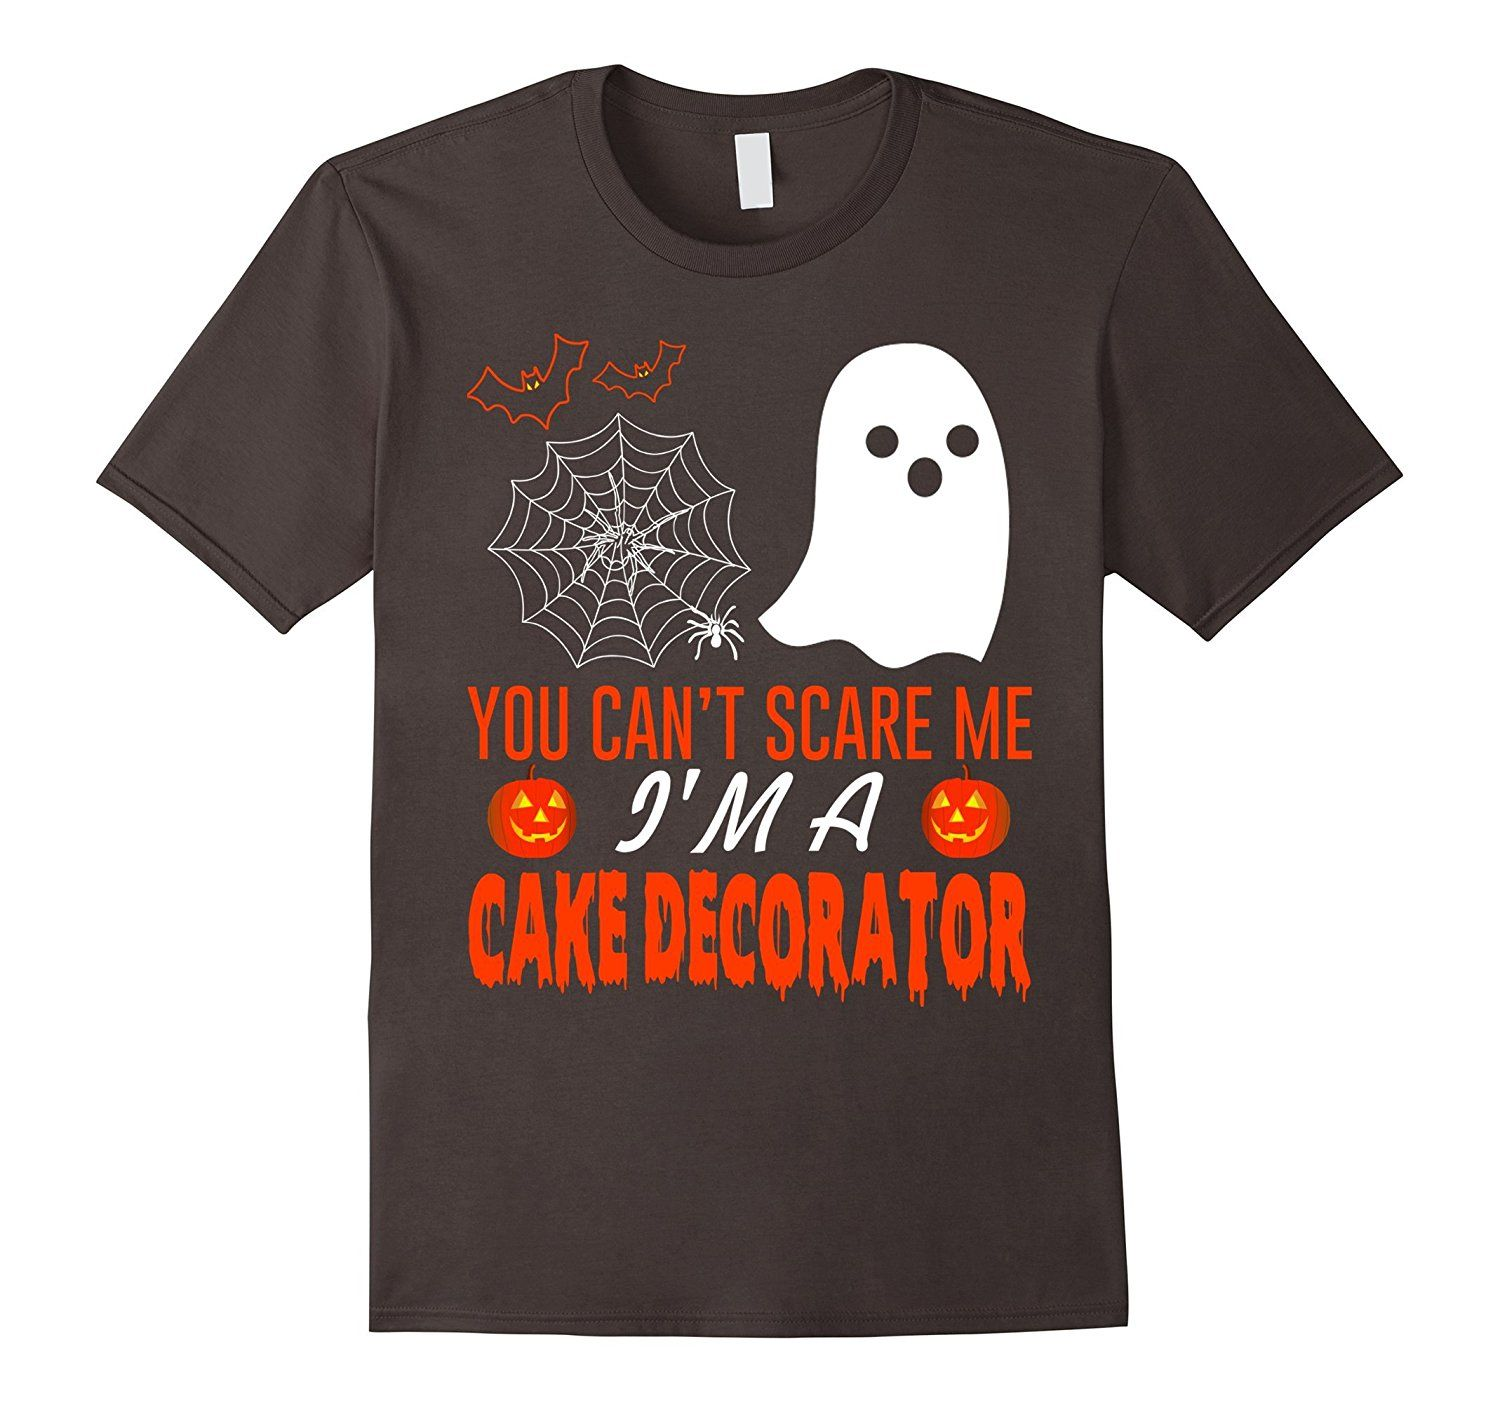 Amazon.com: You Can't Scare Me I'M A Cake Decorator T-Shirt: Clothing